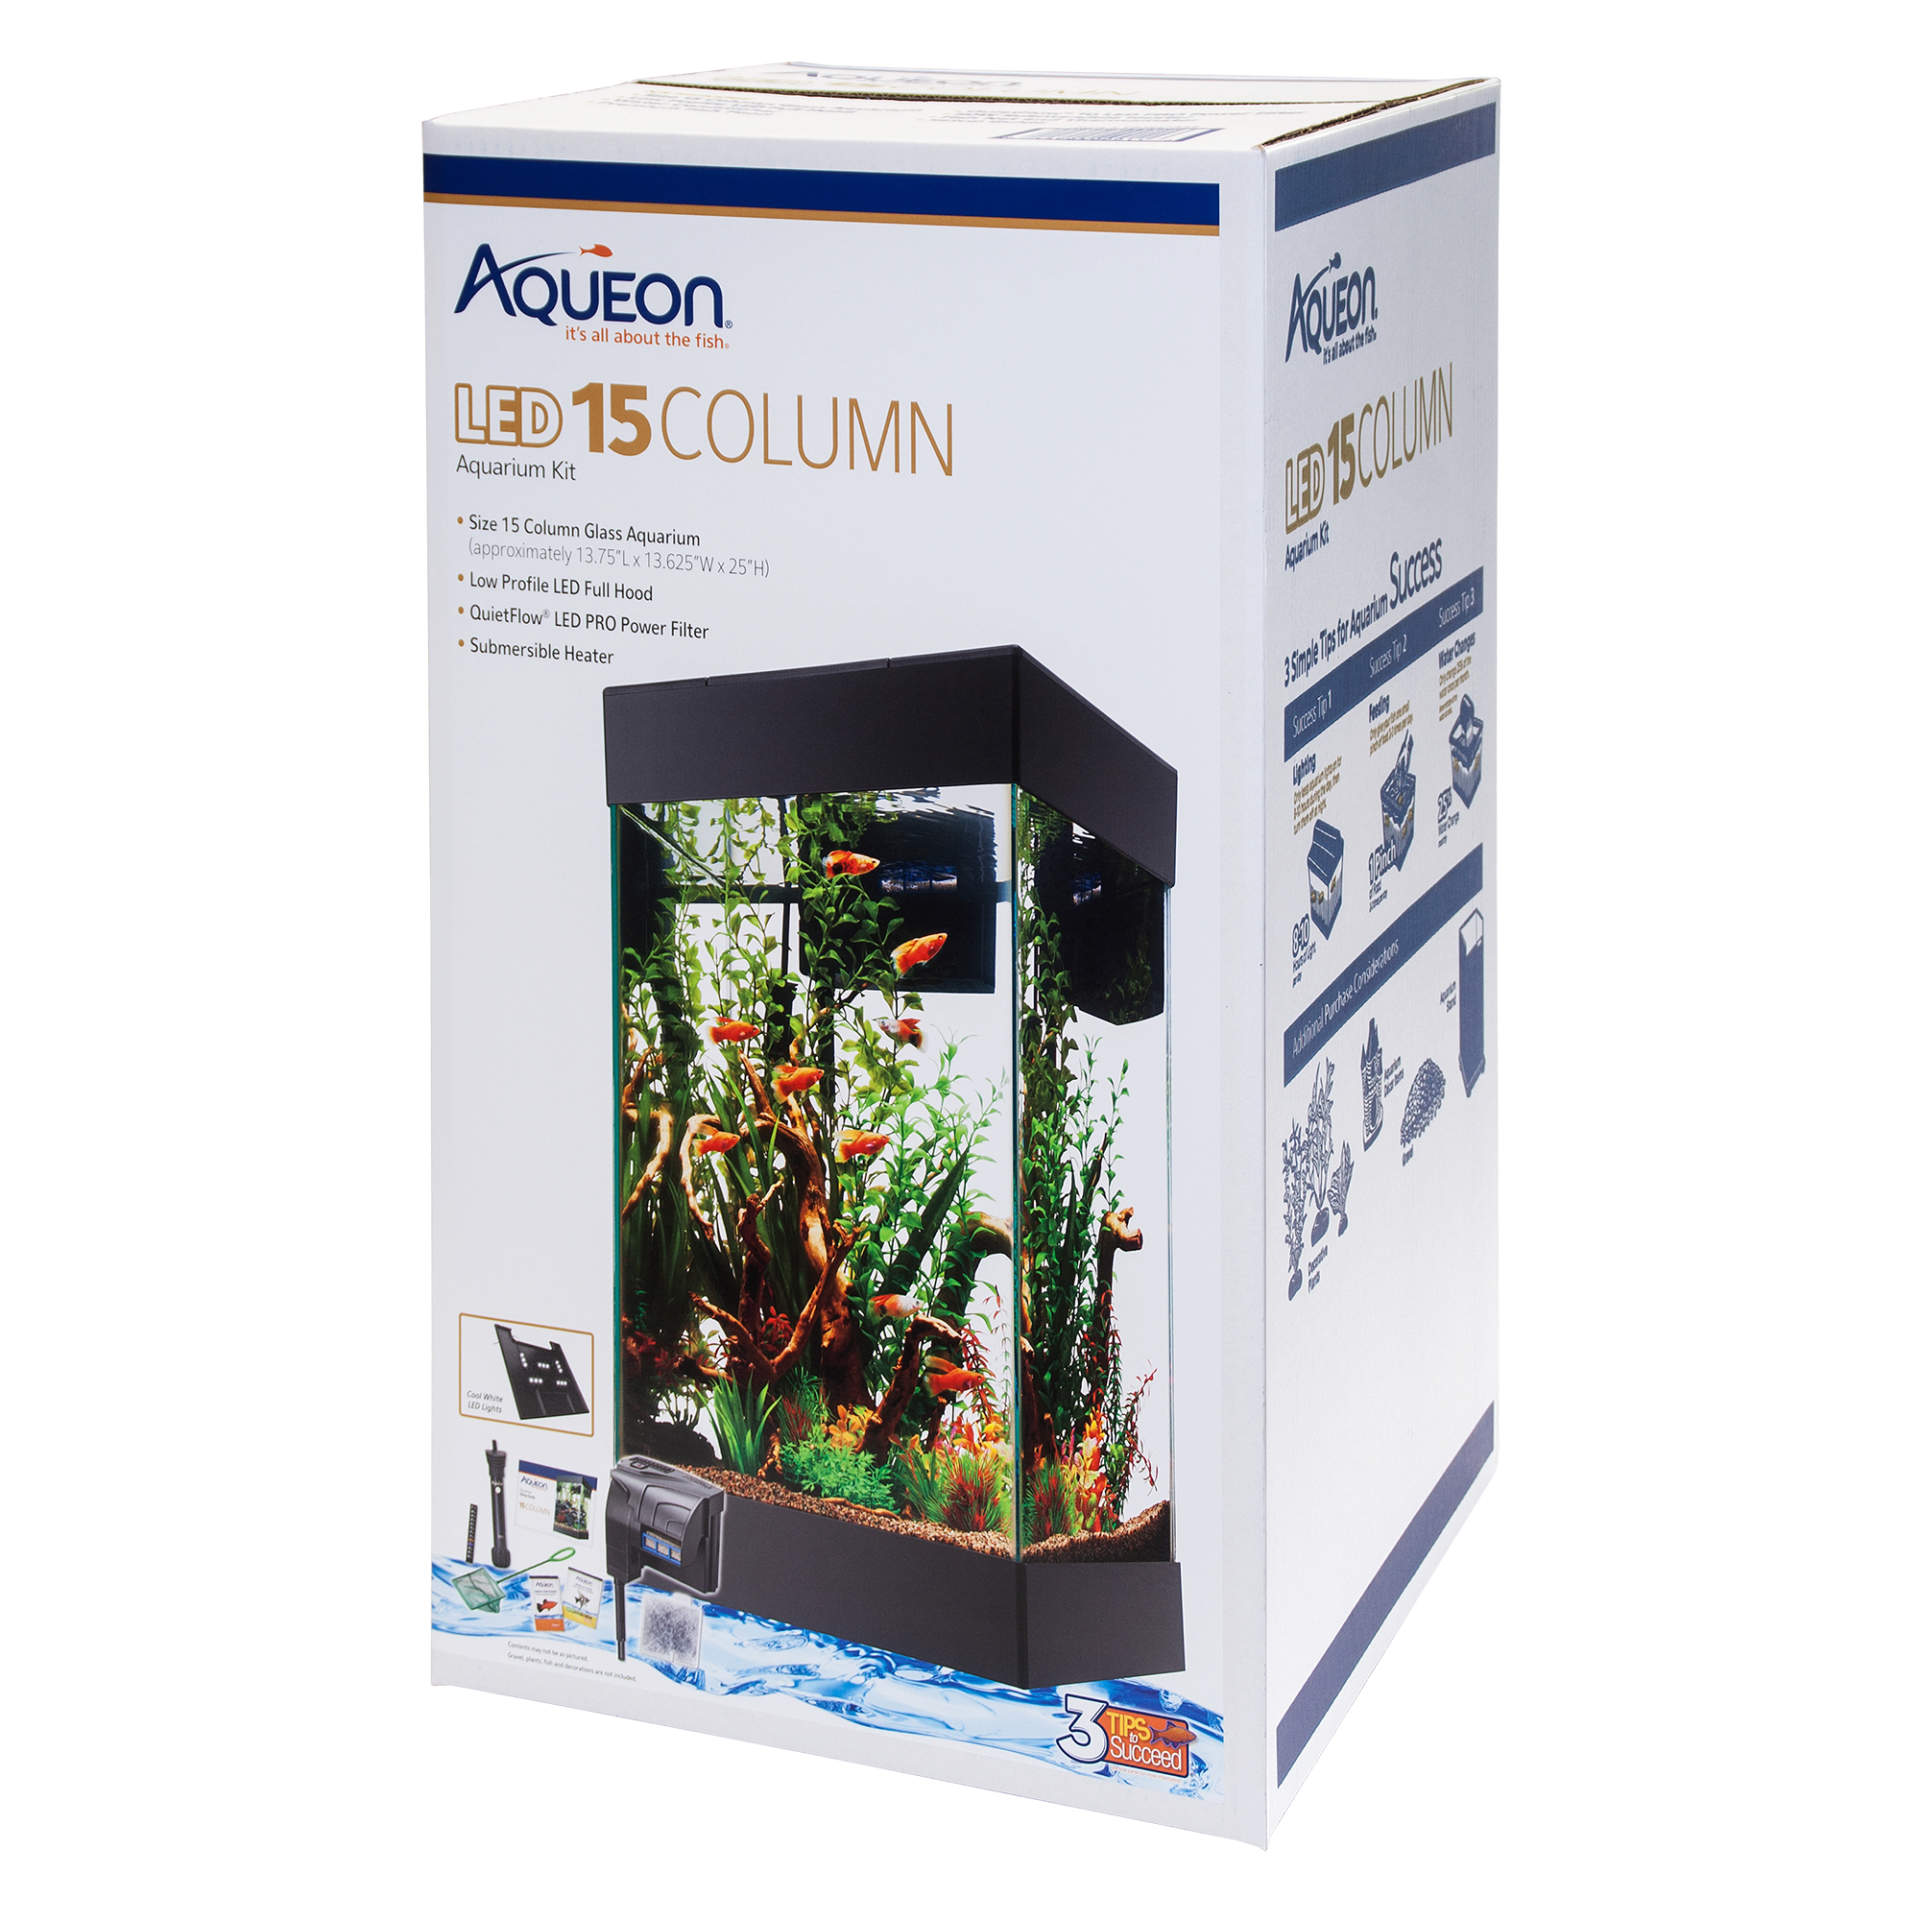 Aqueon LED Aquarium Starter Kit Column Black 15 Gallon by CENTRAL AQUATICS